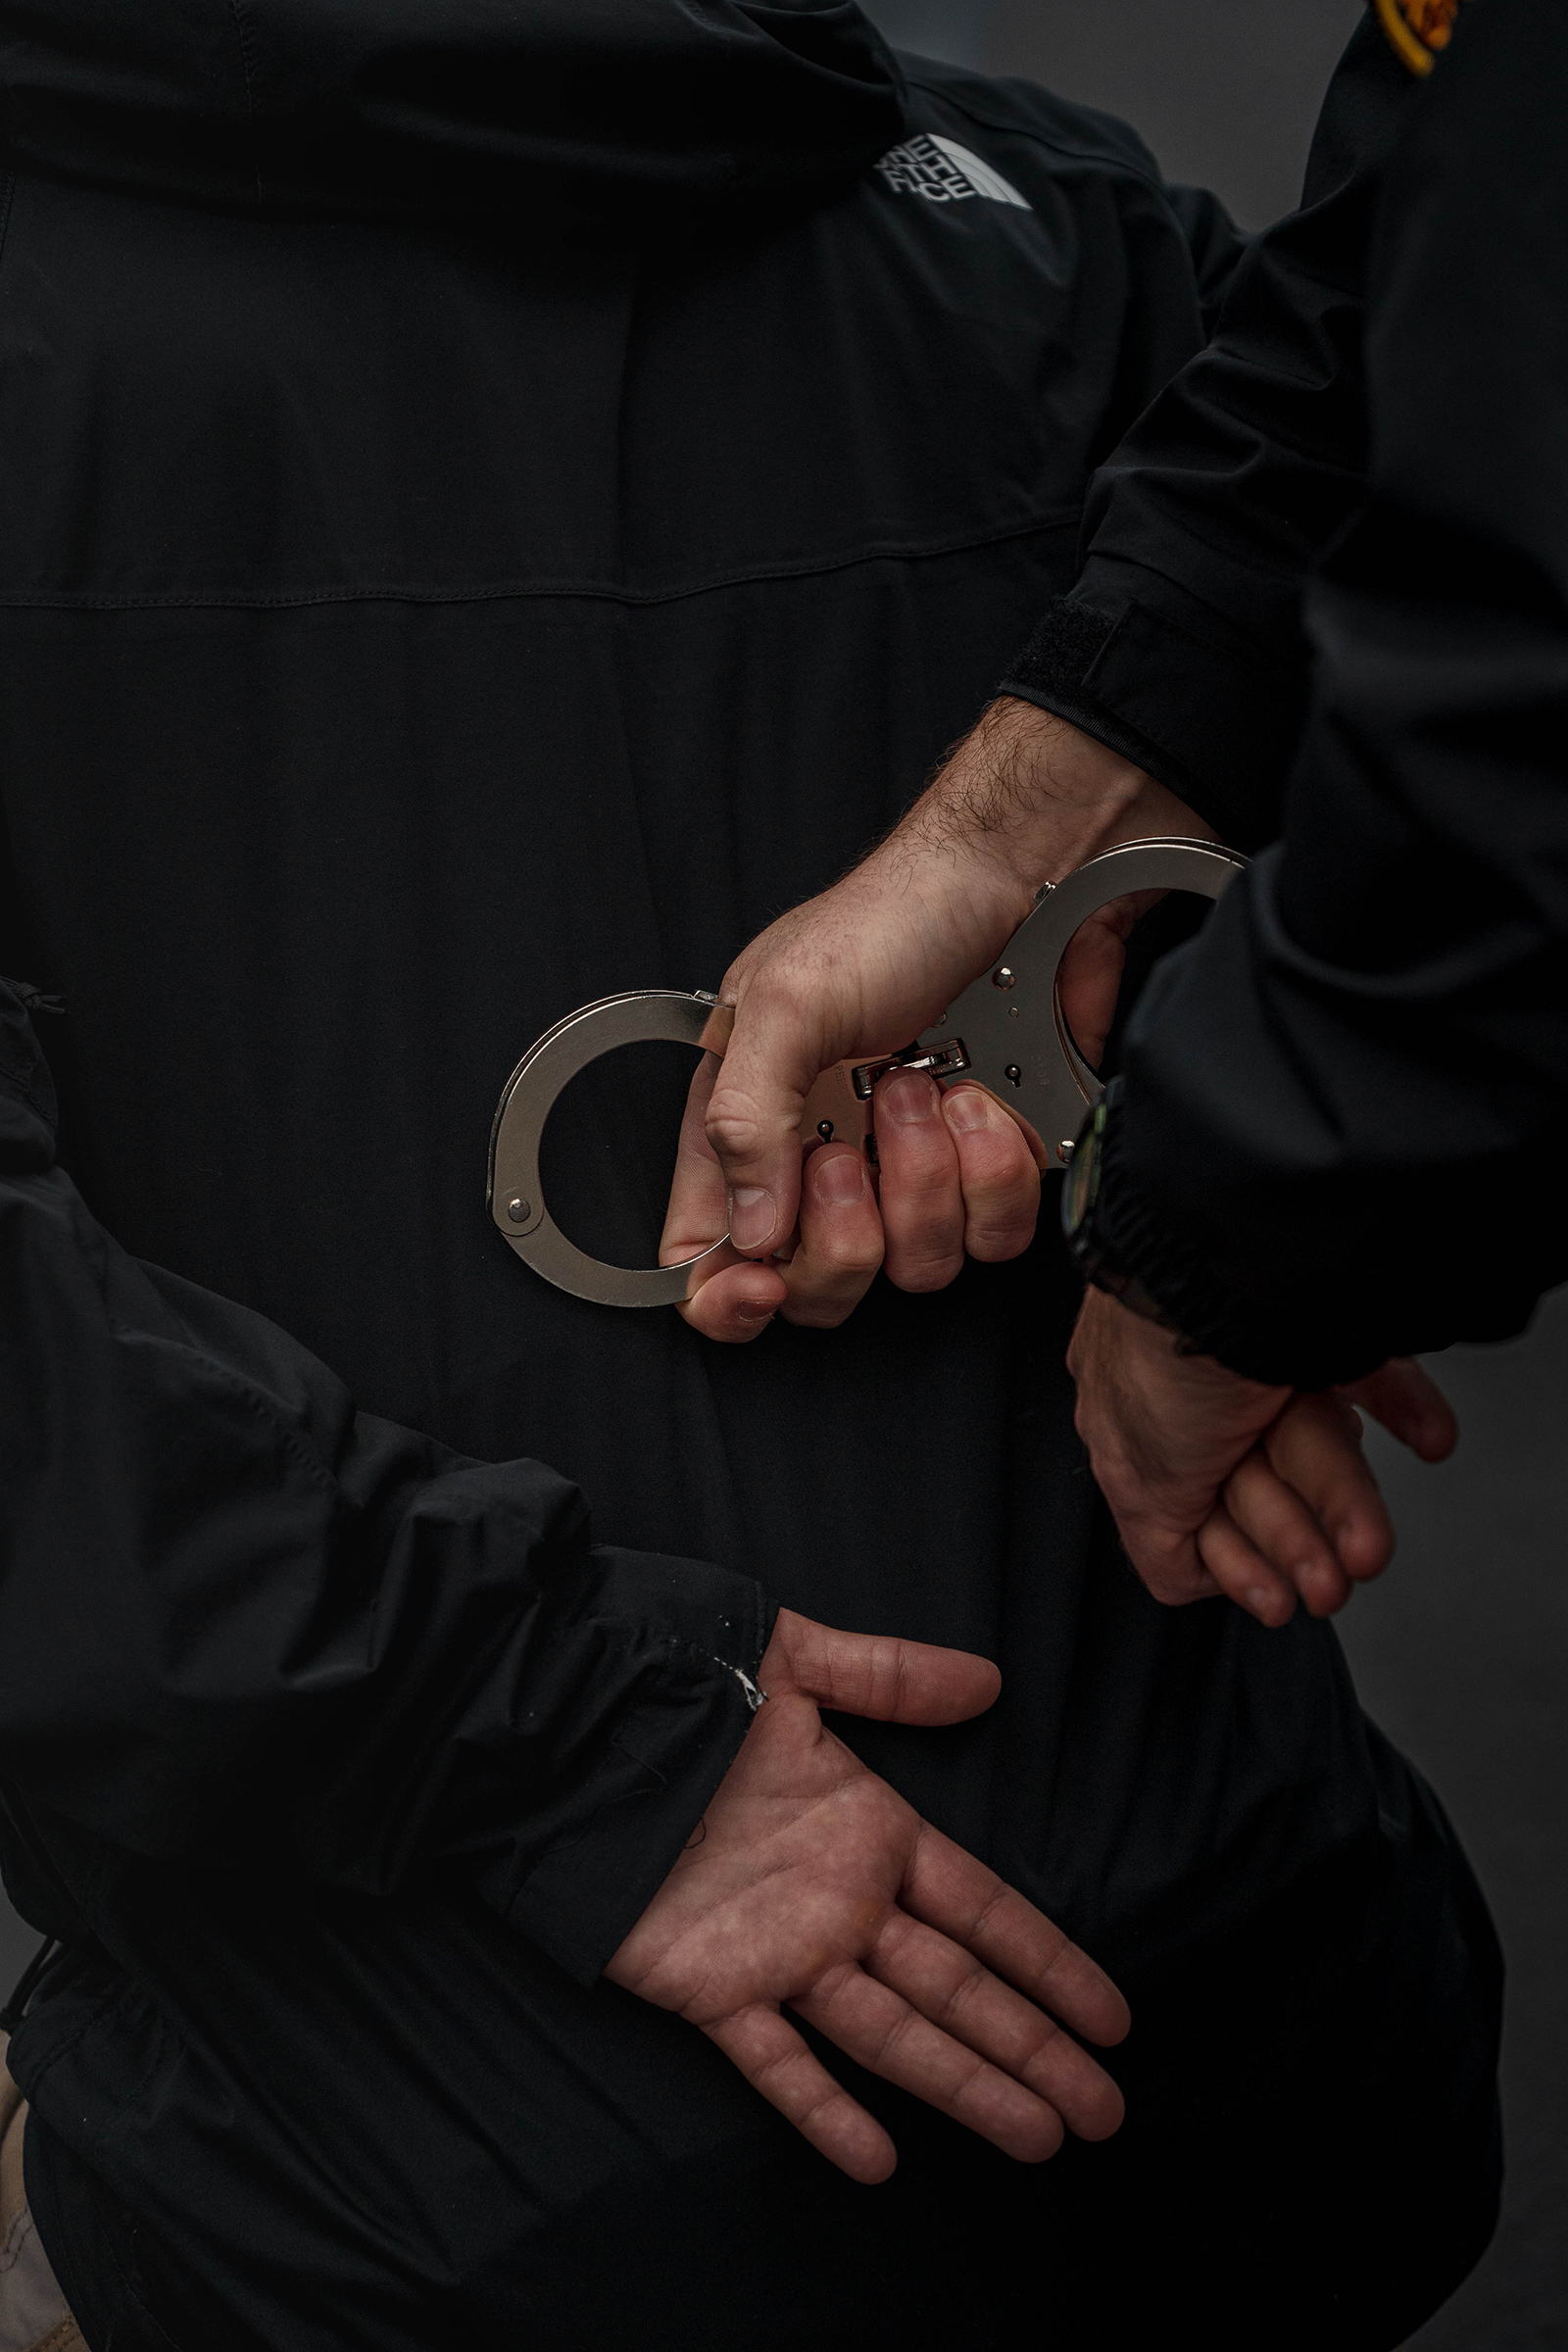 Police recruits practice handcuffing a suspect during a patrol tactics exercise.